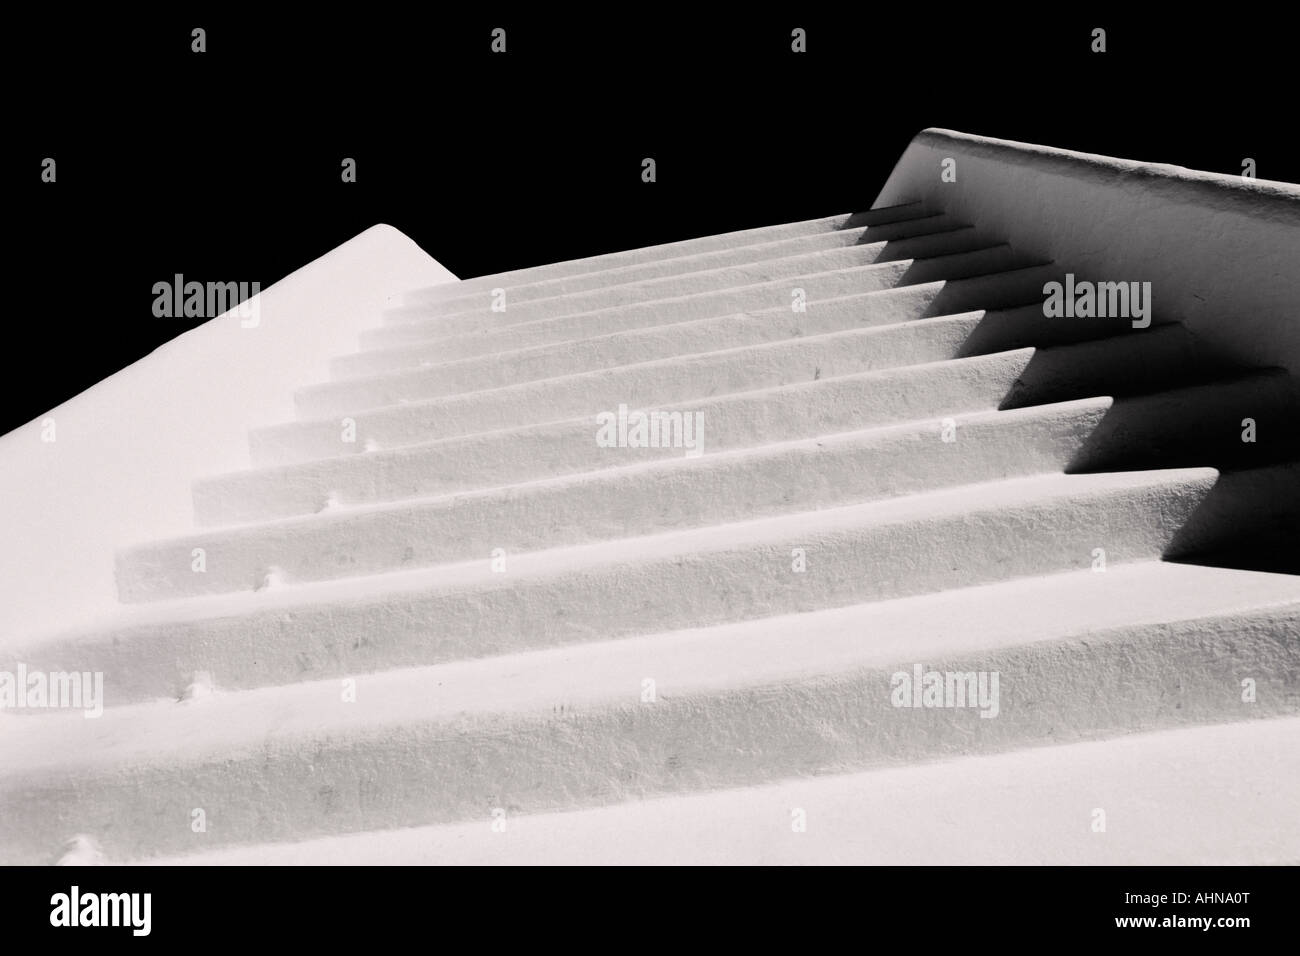 Stairway ascending to nowhere - Stock Image